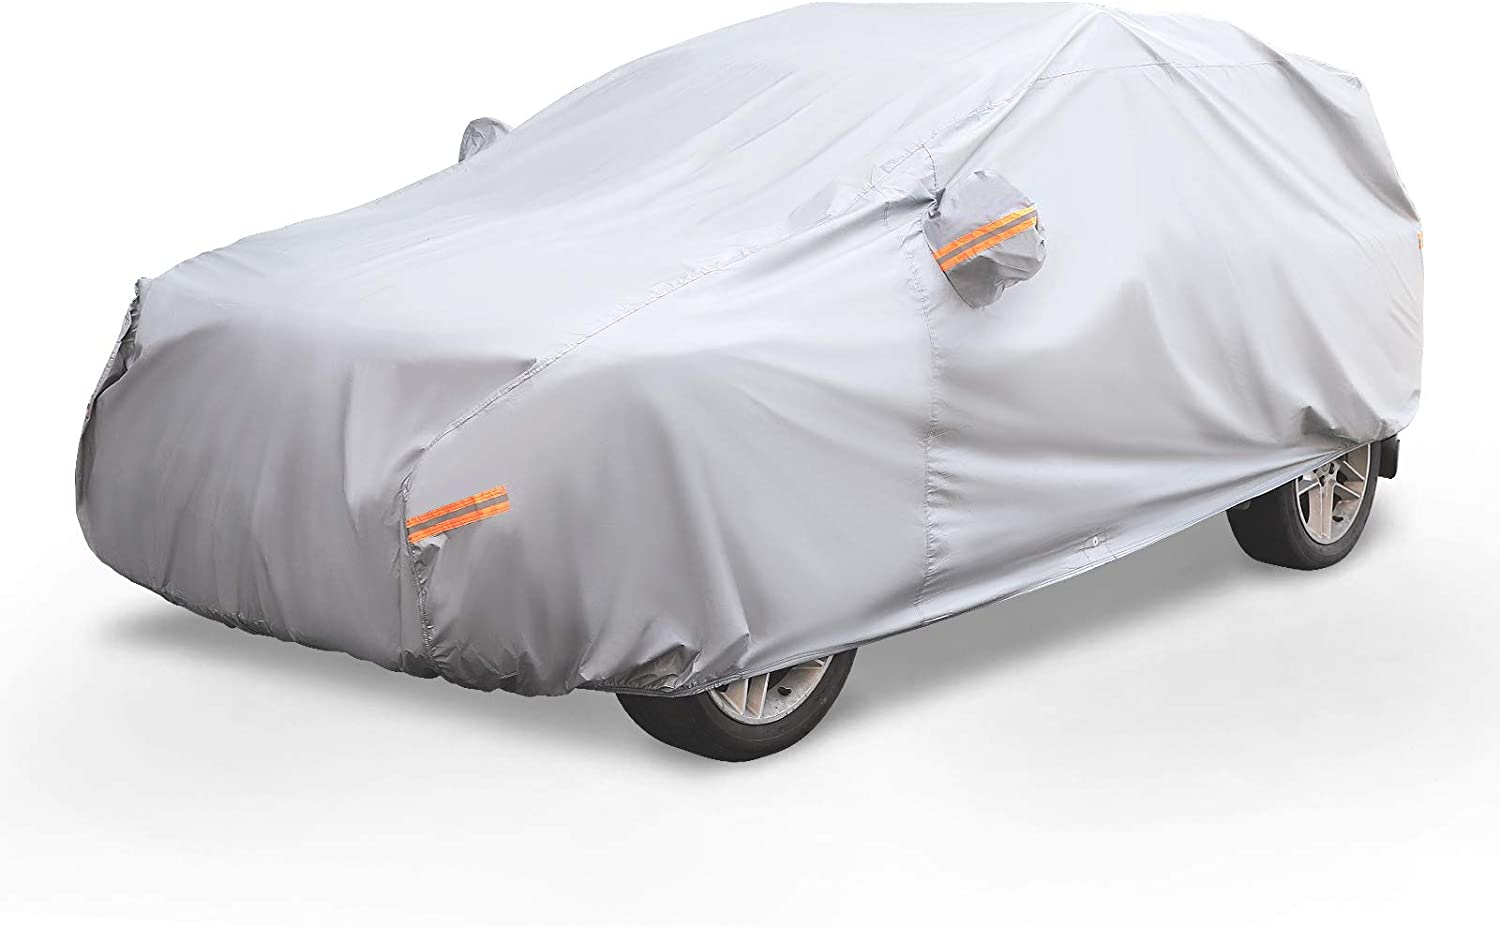 Top Car Cover Protector fits MITSUBISHI OUTLANDER Frost Ice Snow Sun 93B